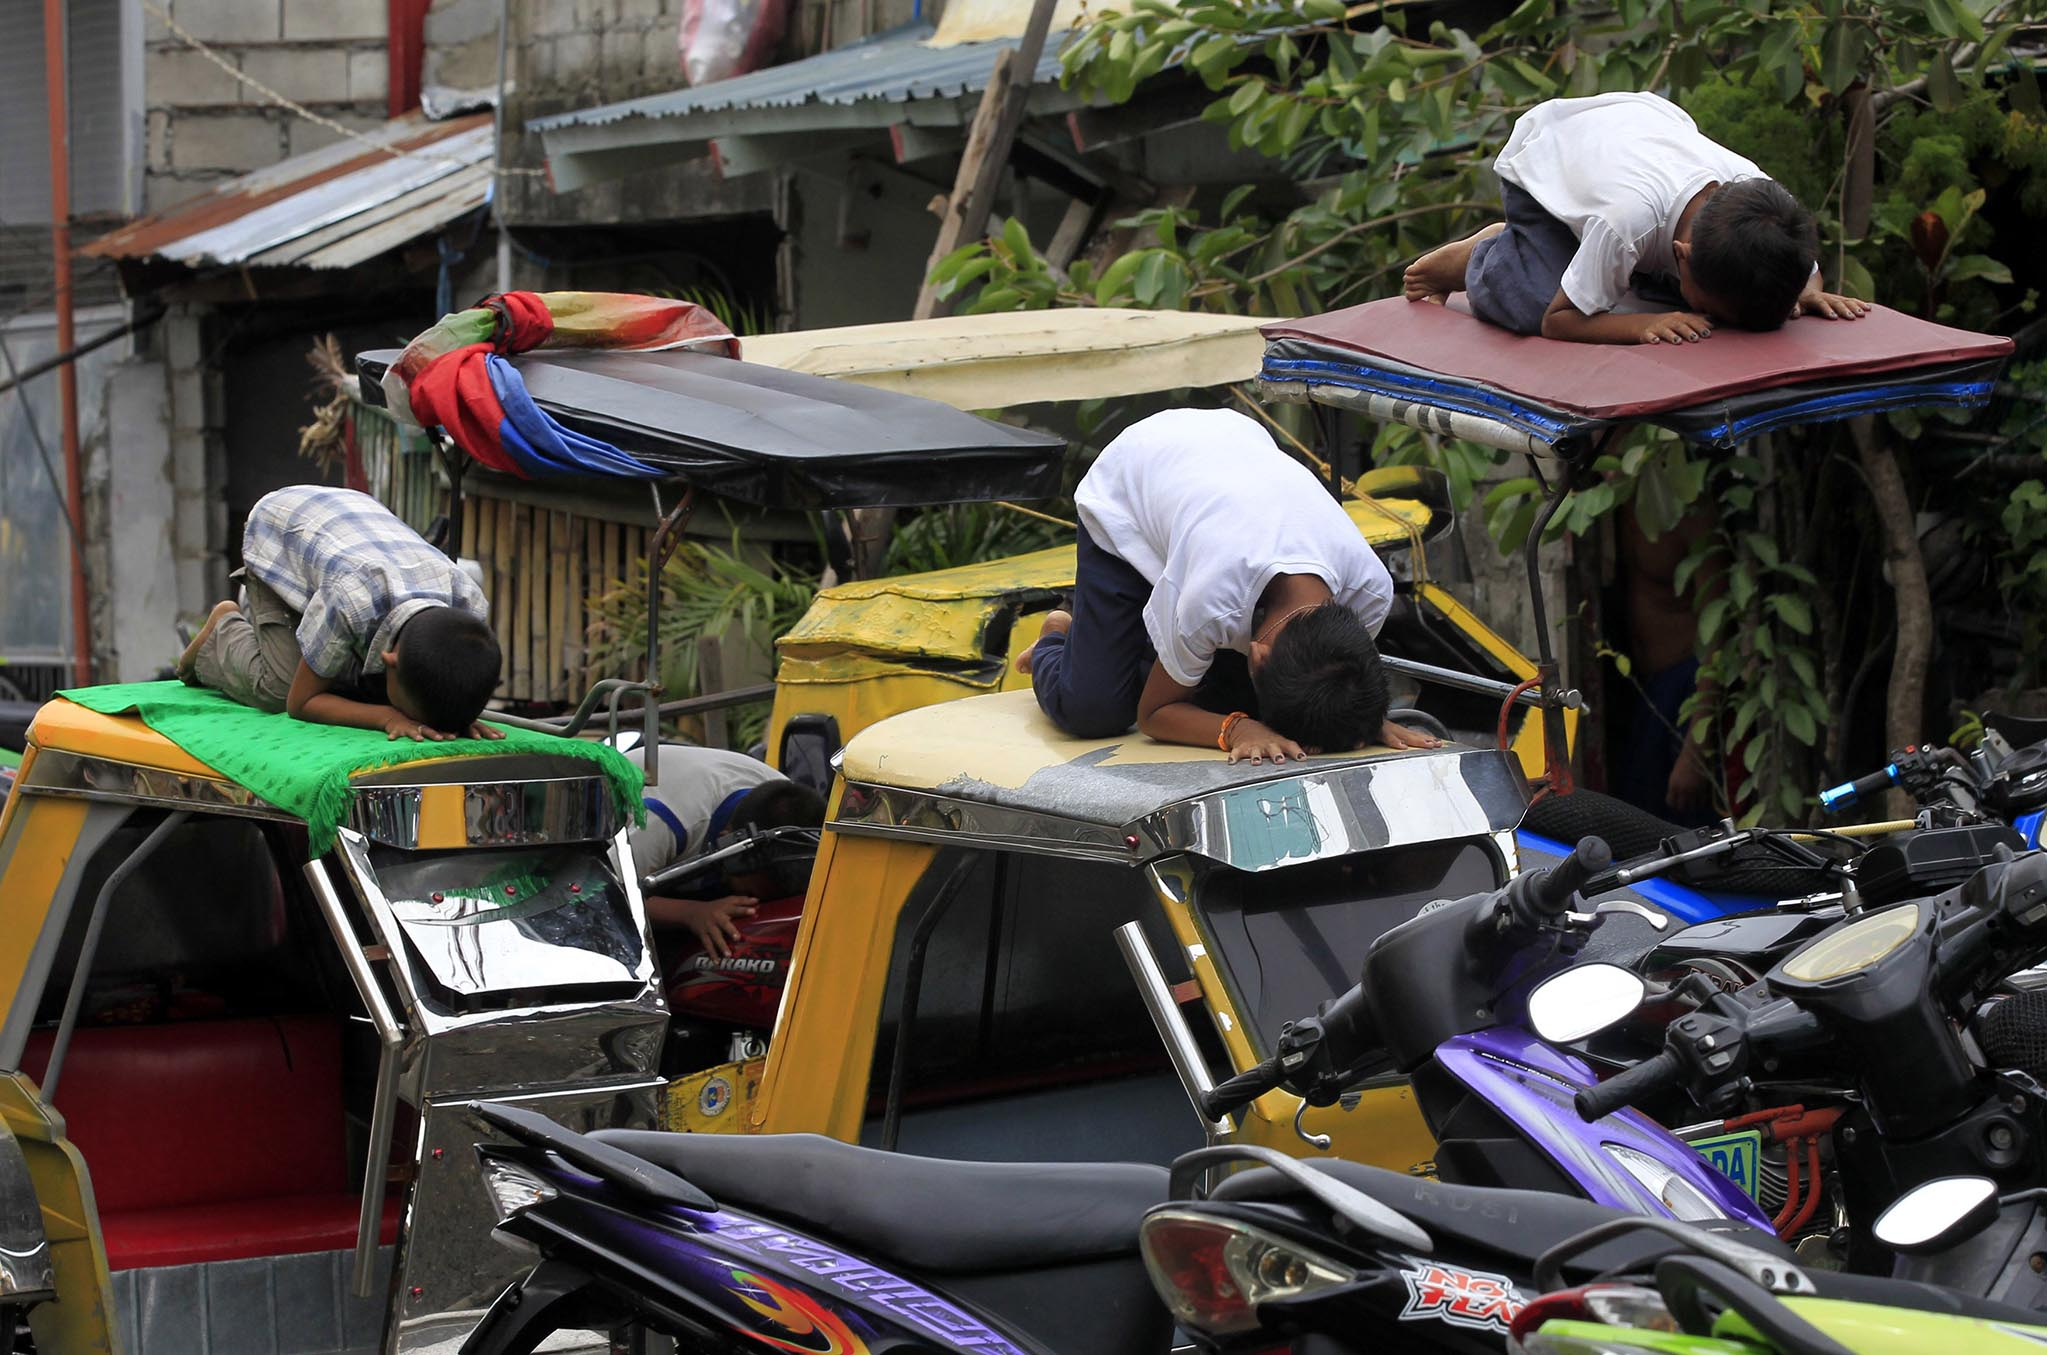 Muslim youths pray atop motorcycle taxis during the fasting month of Ramadan in front of Al-Satie Mosque in Baseco, Tondo city, metro Manila